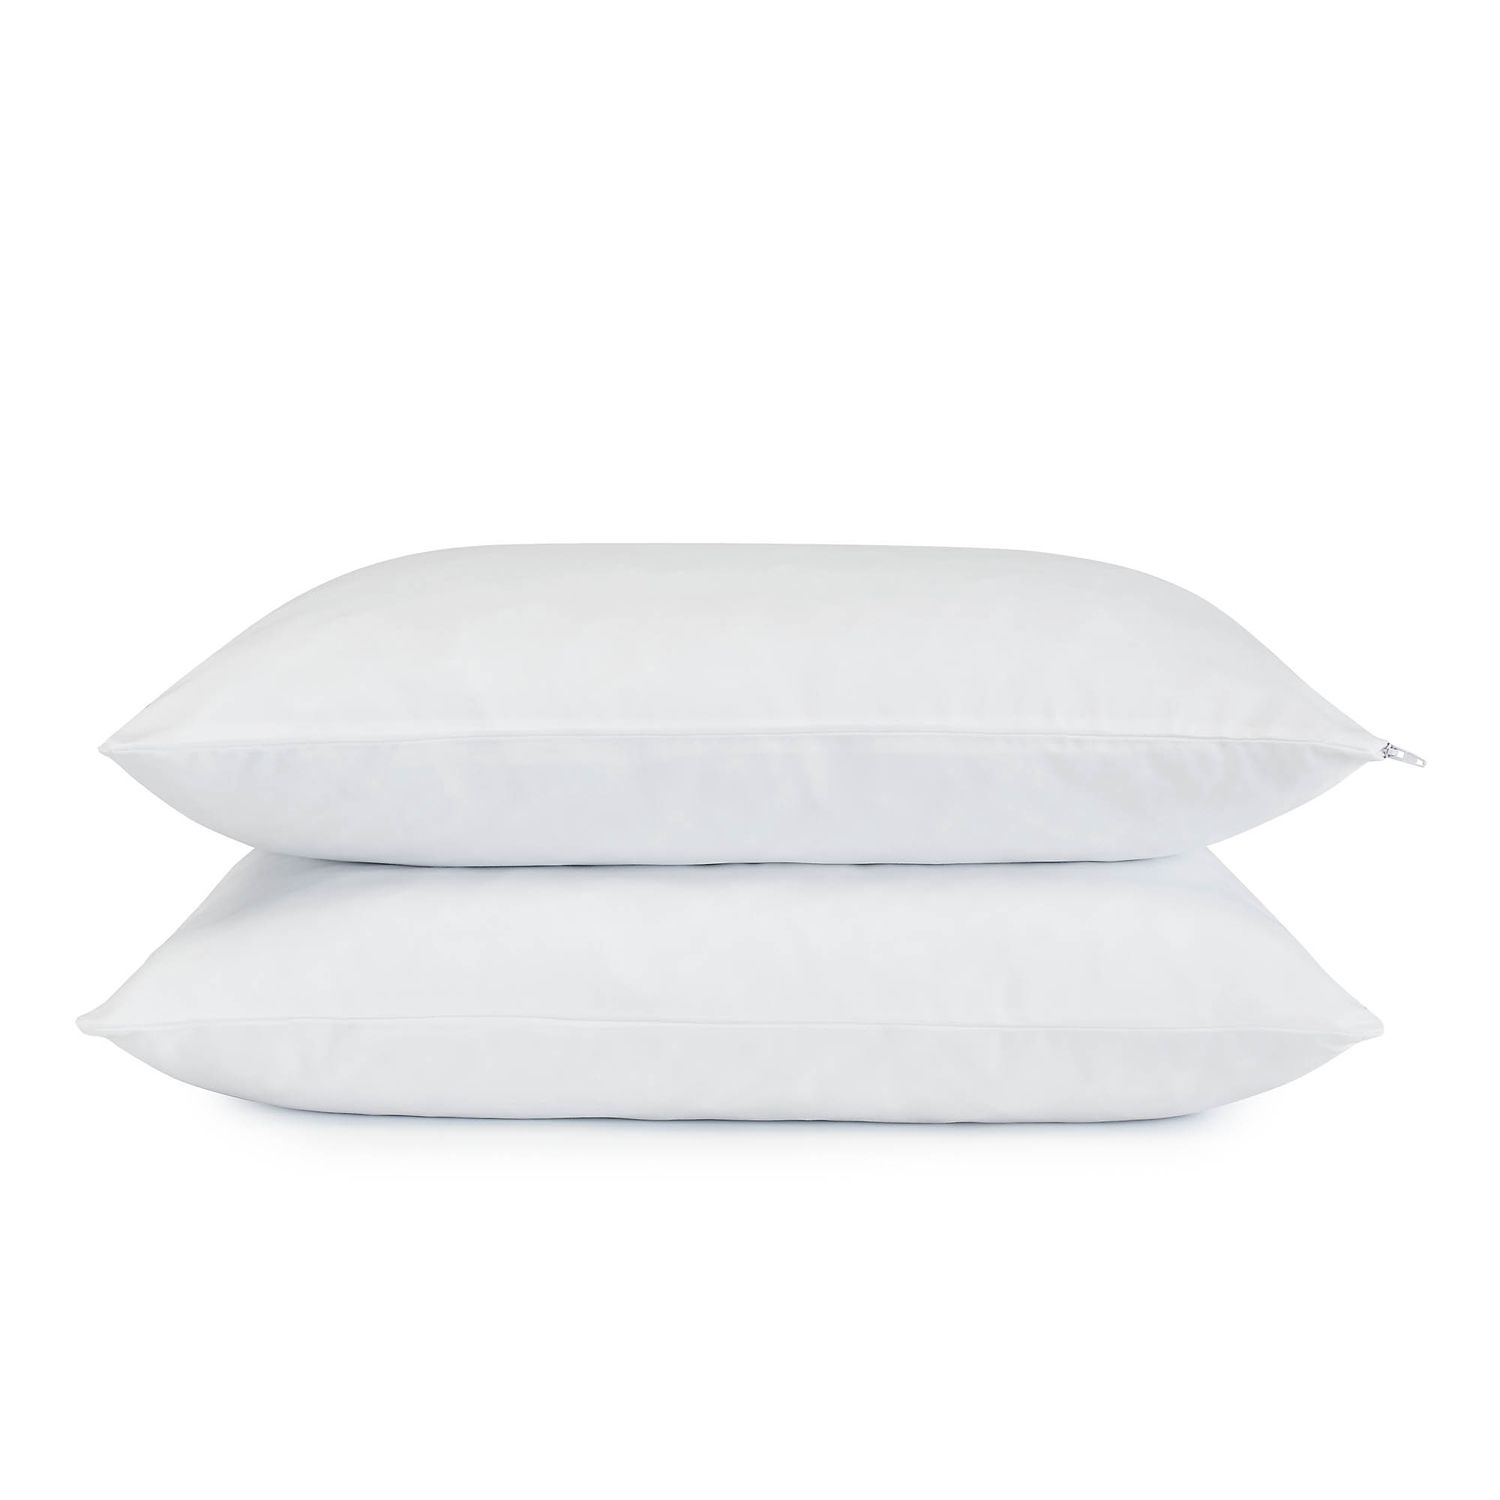 dsc kohl spring s my needs pillow kohls decorating organizing down the pillows for and